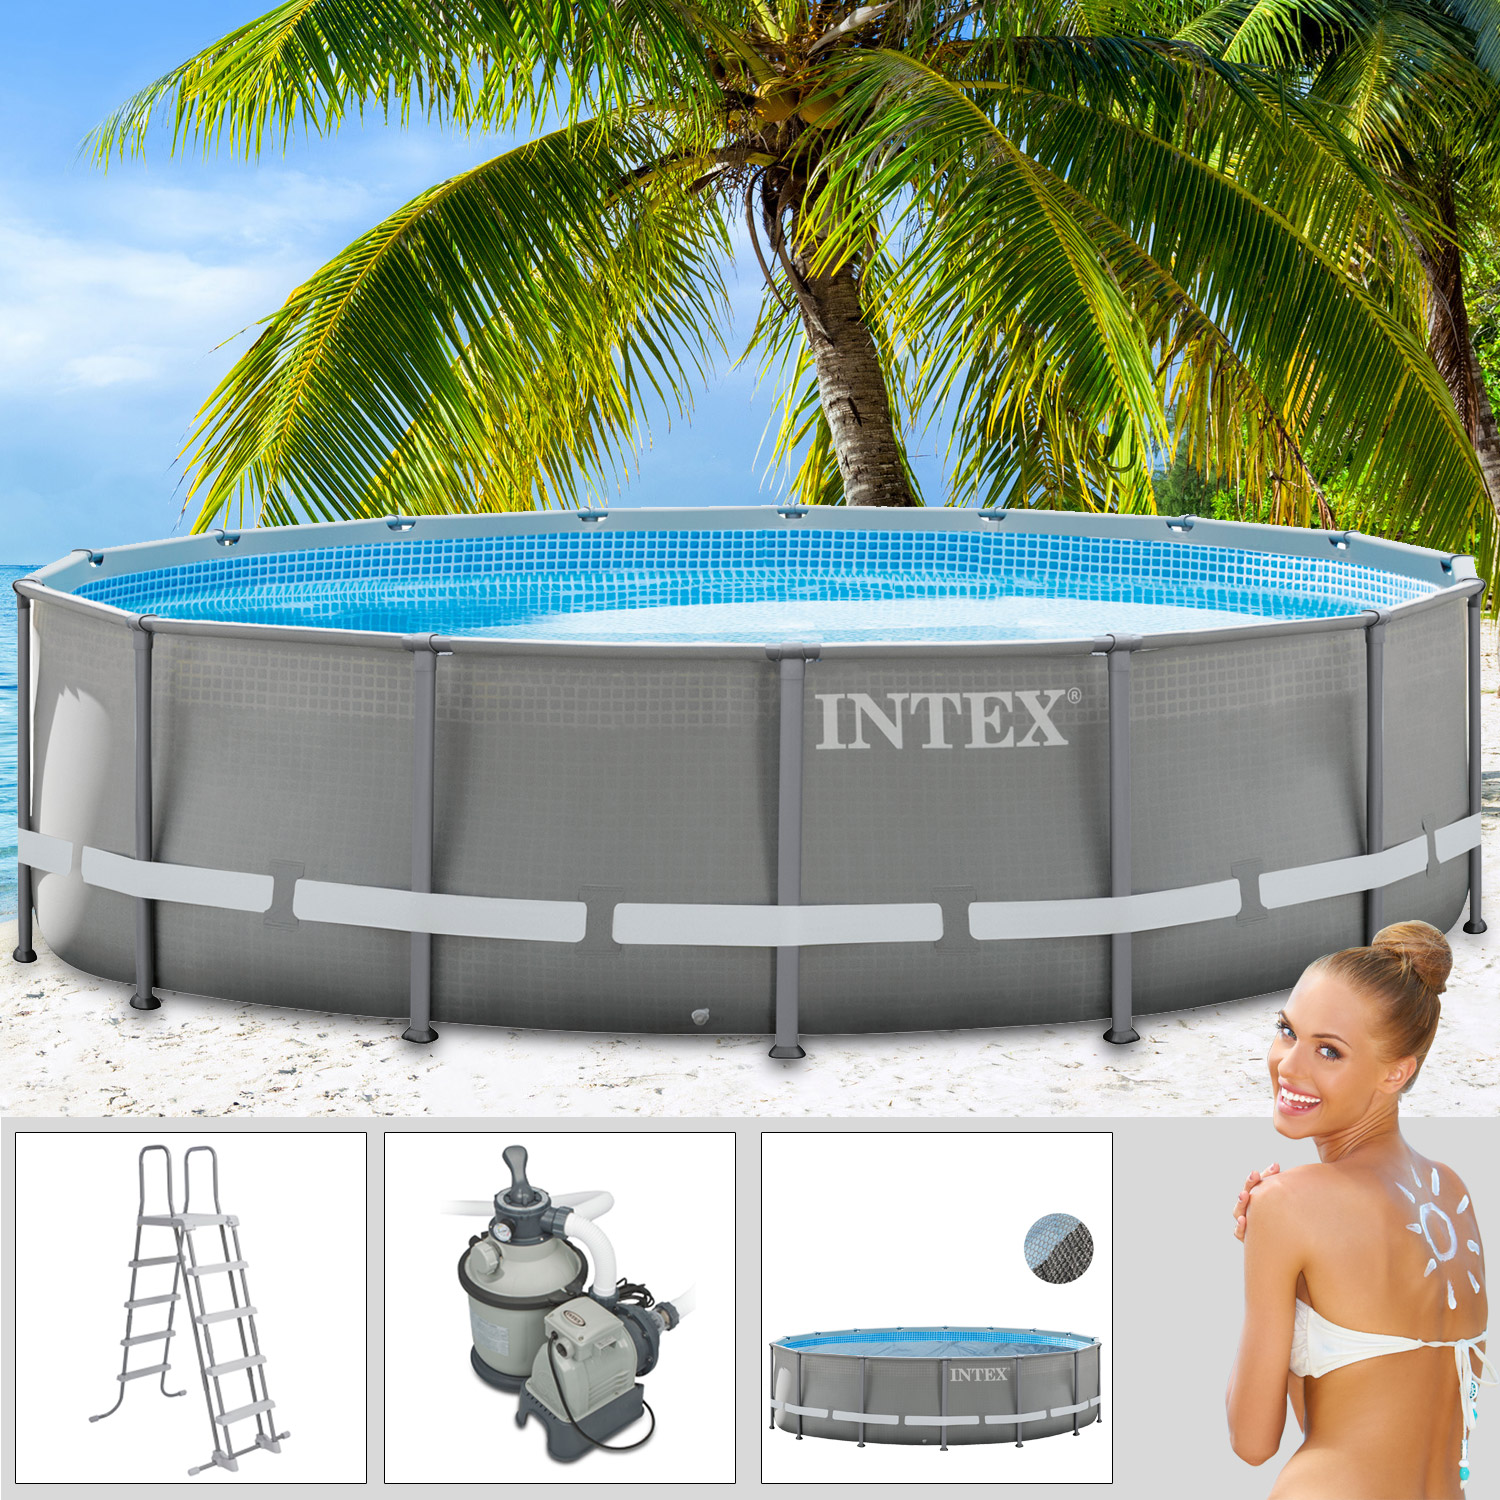 Intex 488x122 set schwimmbecken swimming pool schwimmbad for Stahlwand schwimmbad